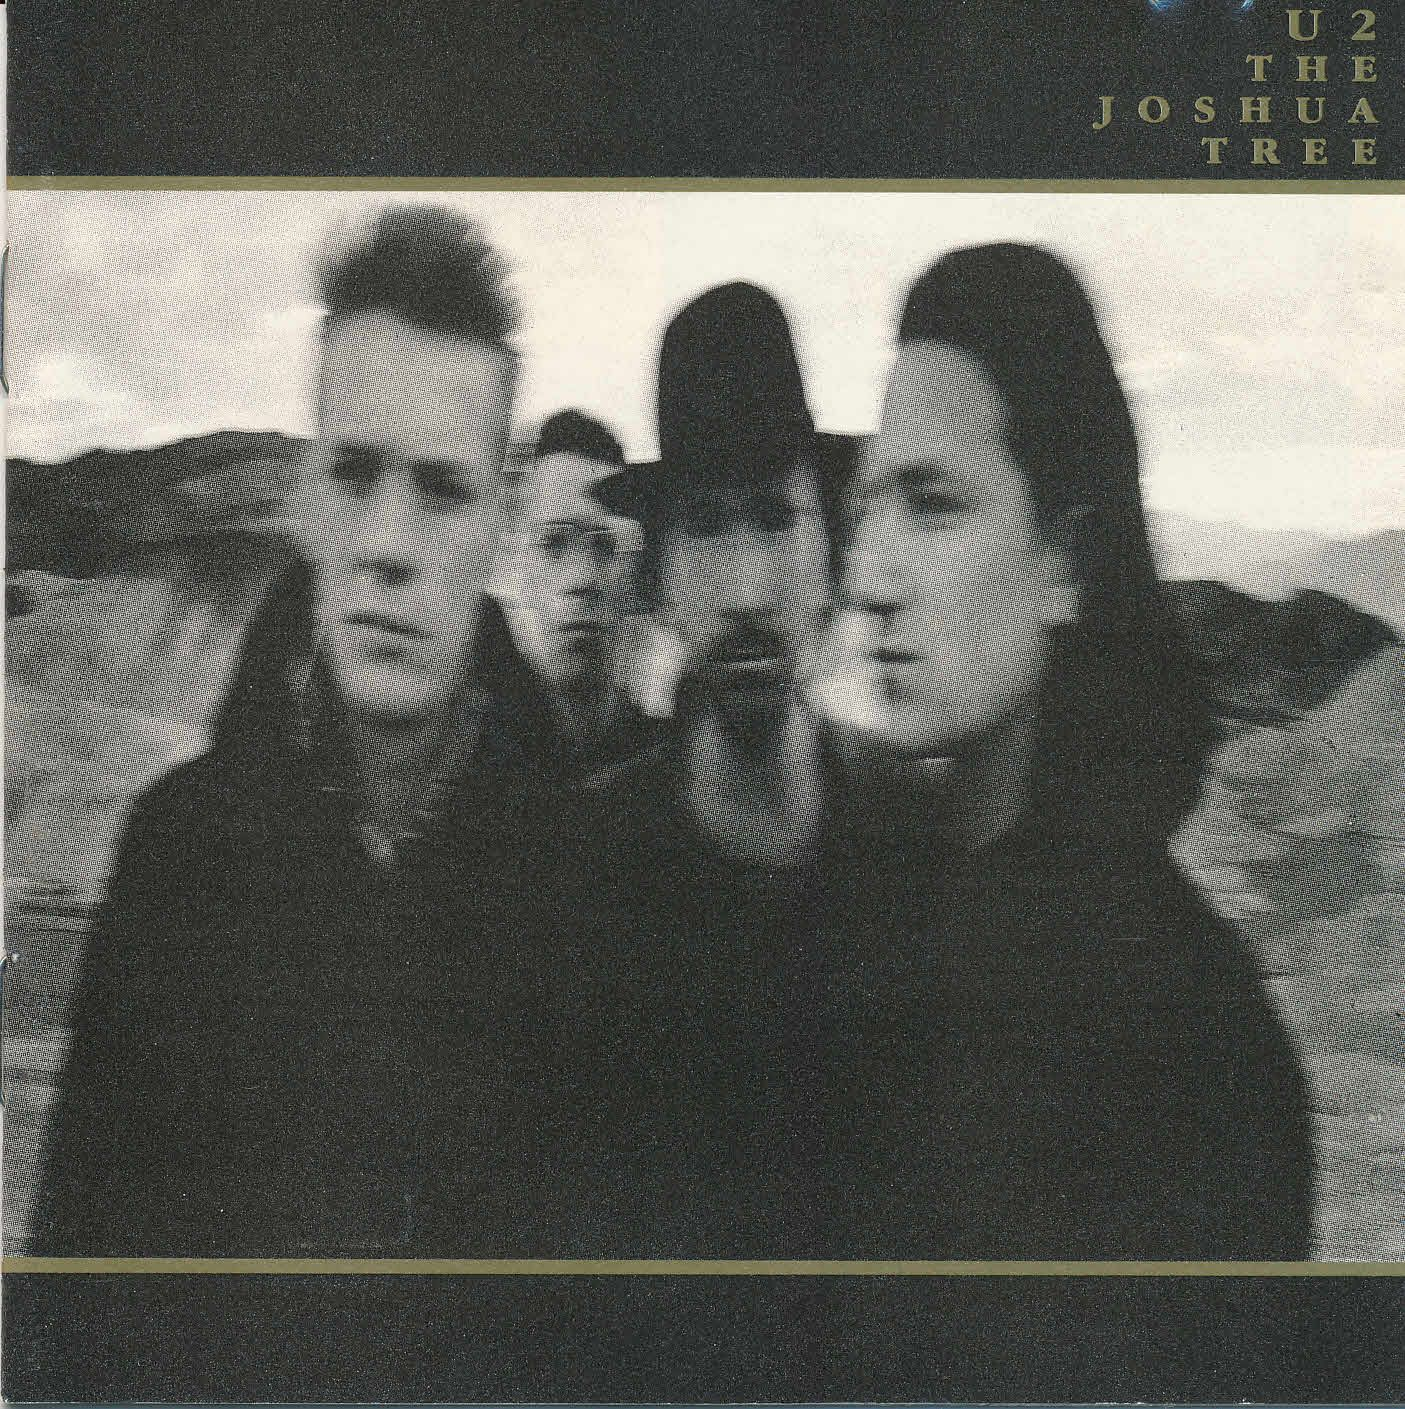 U2 - The Joshua Tree  album cover